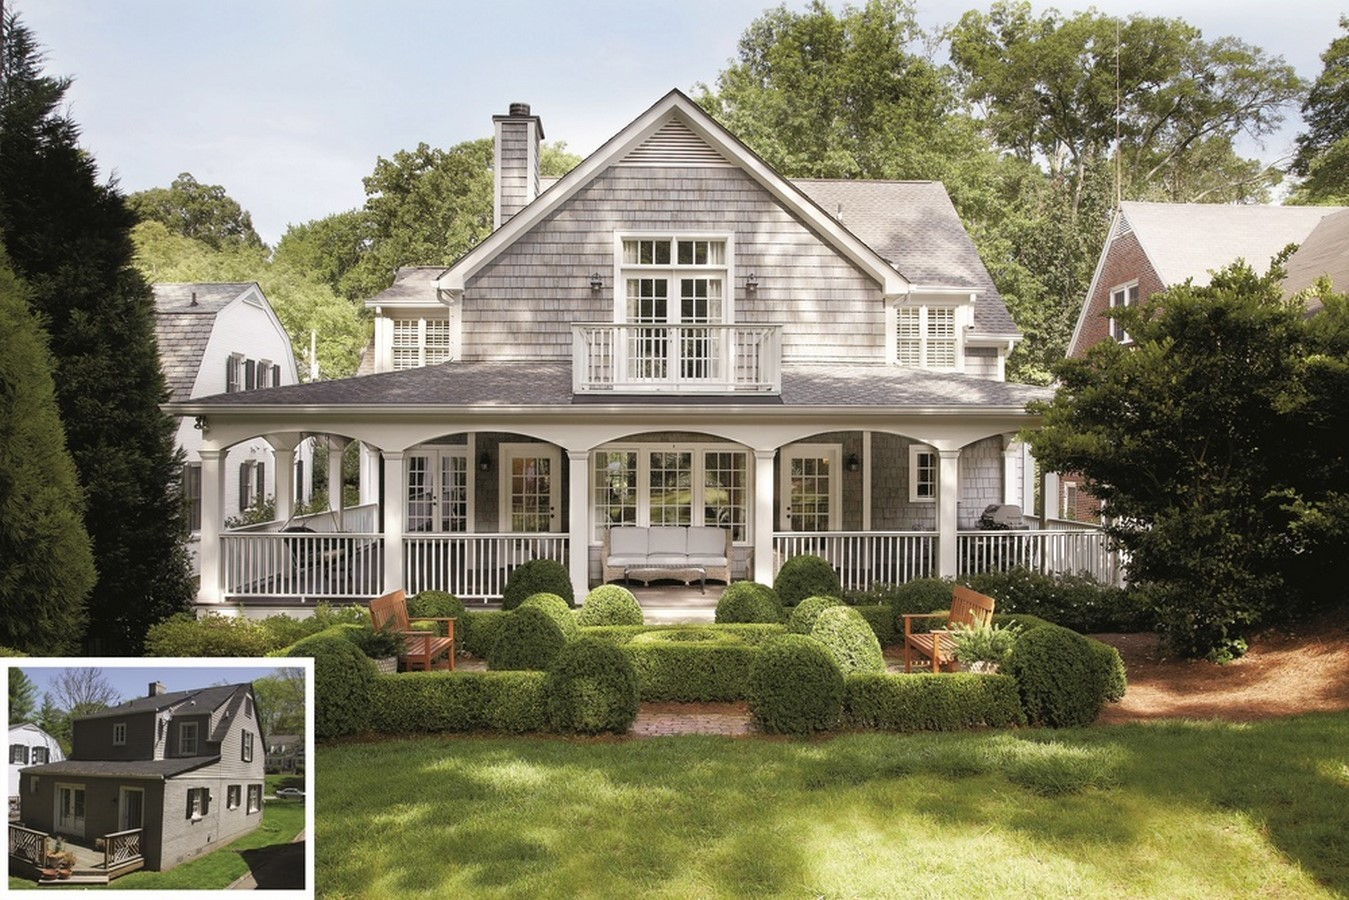 Cape Cod Style Home - Sheet2